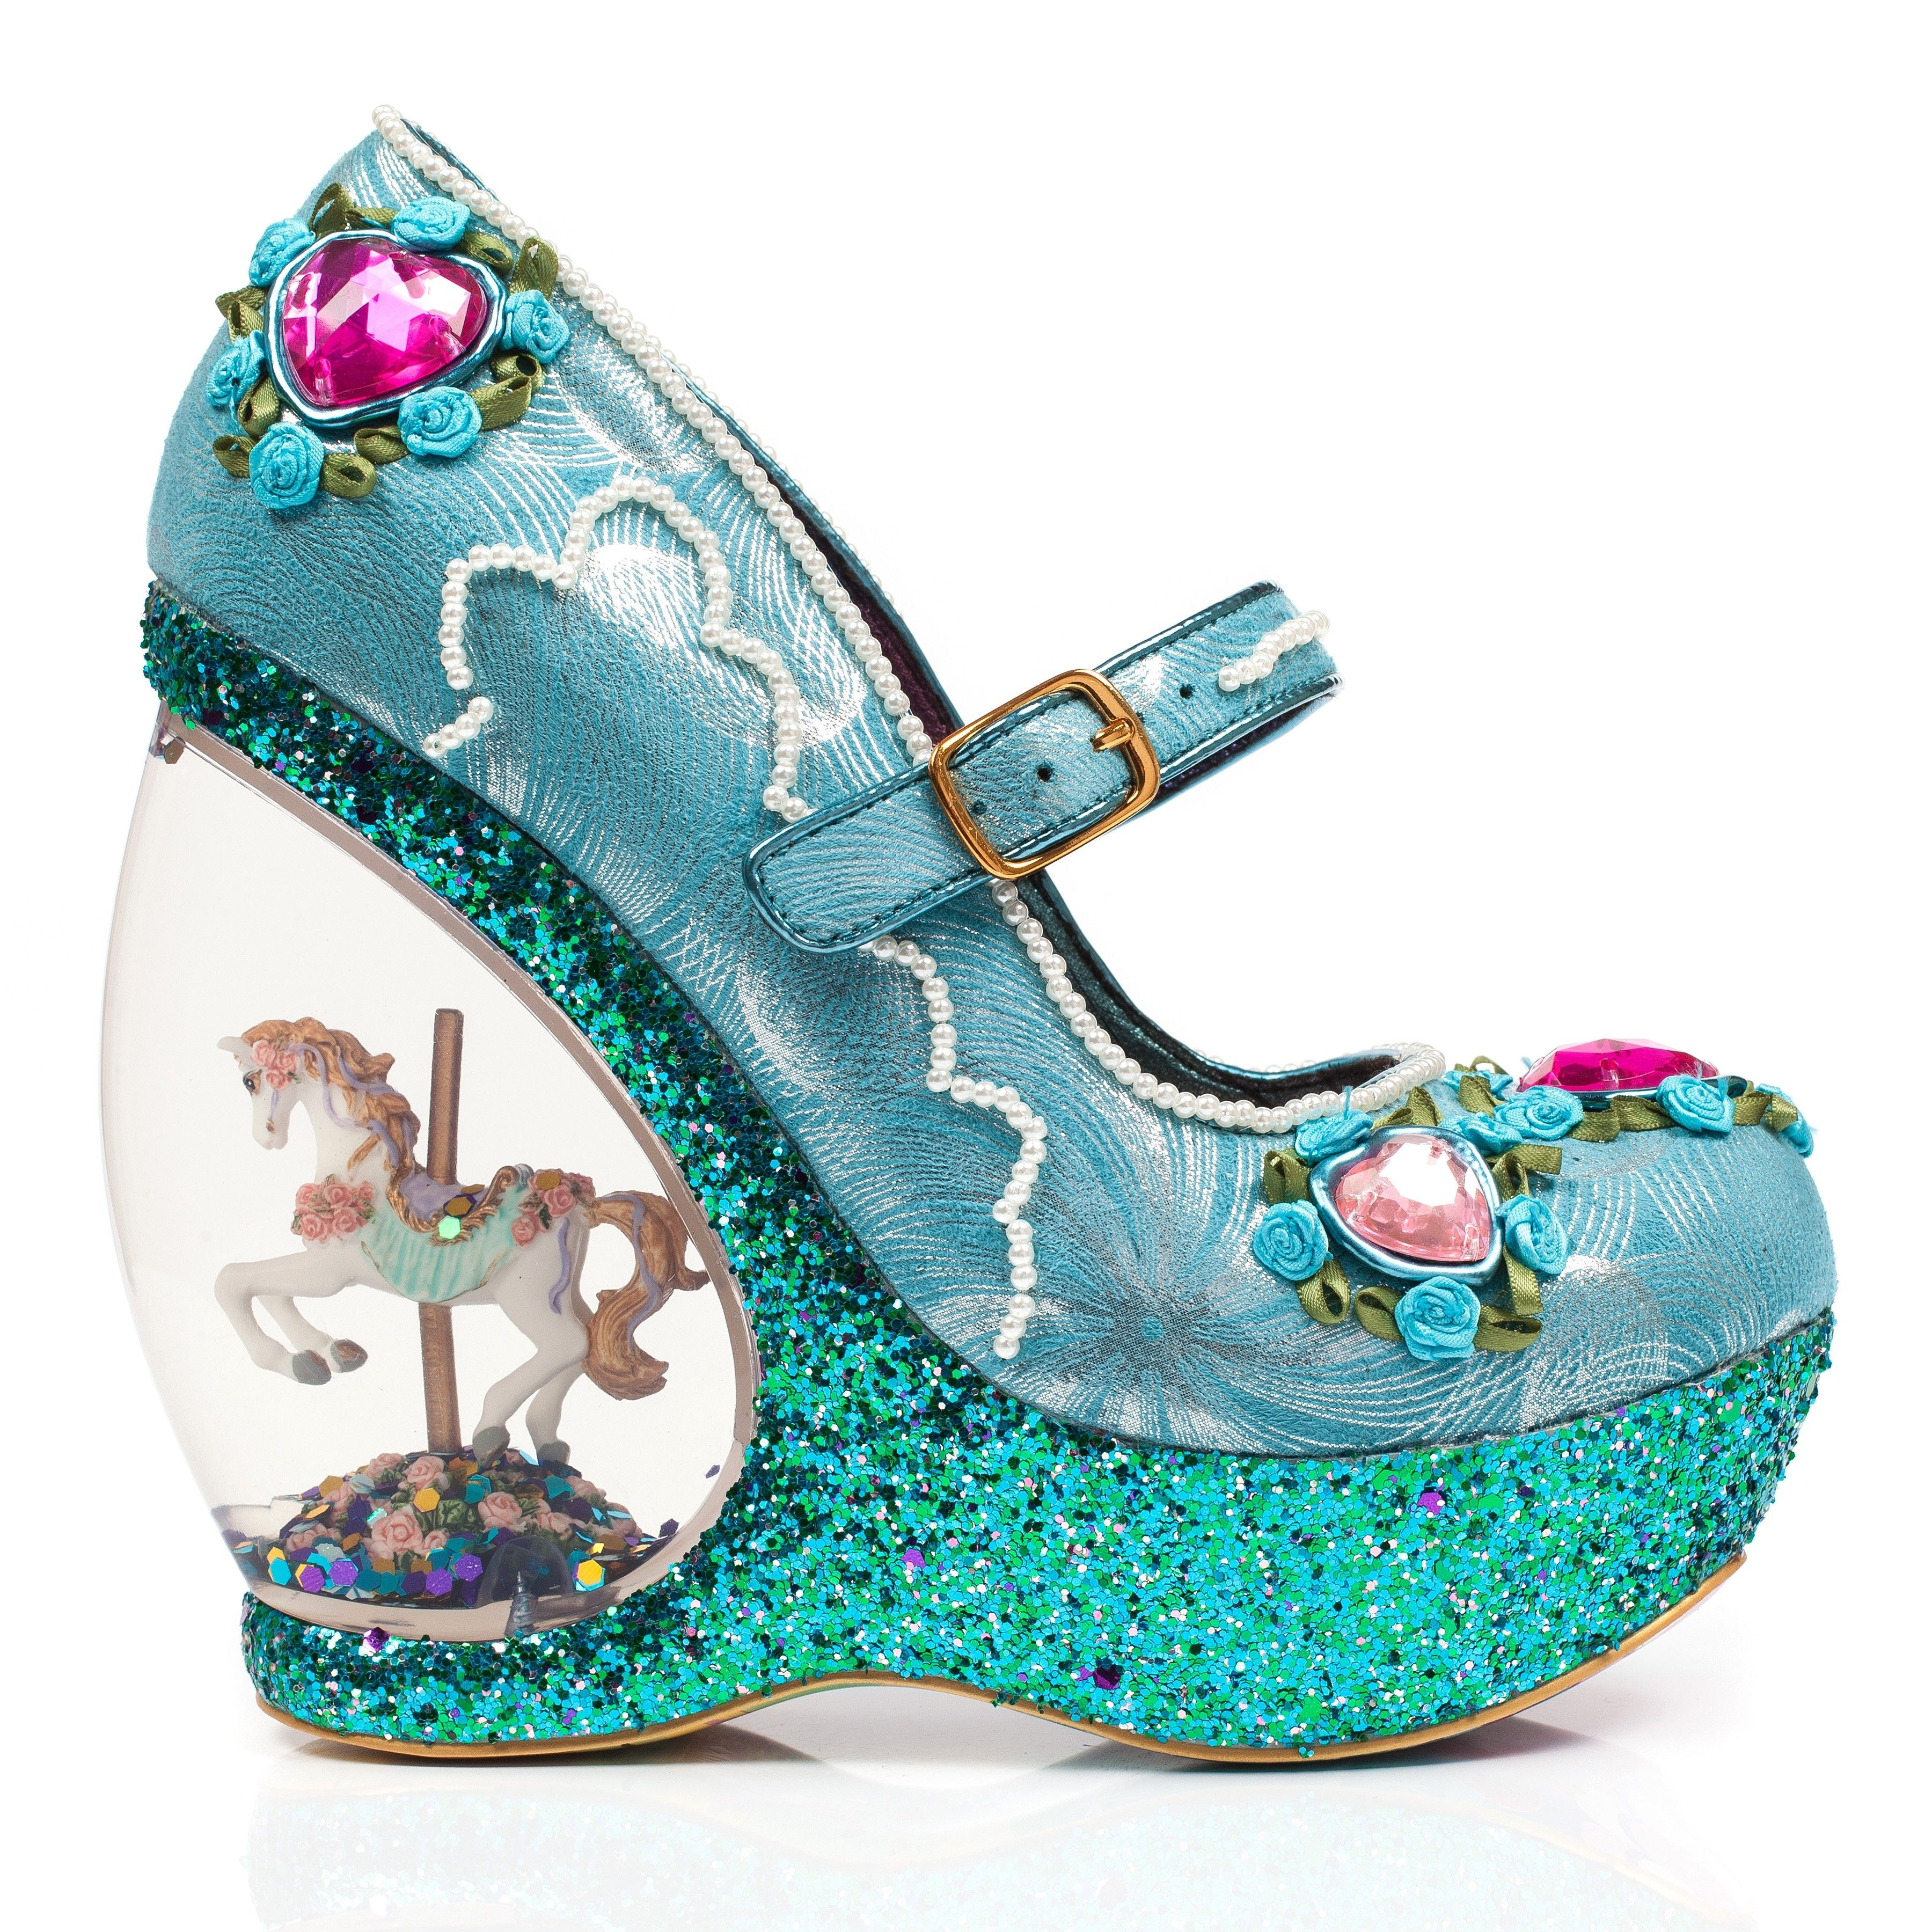 0811586f71d2 Romance your feet in these outstanding snow globe carousel horse wedges and  come out smelling of roses. A beautiful embellished upper comes adorned  with ...